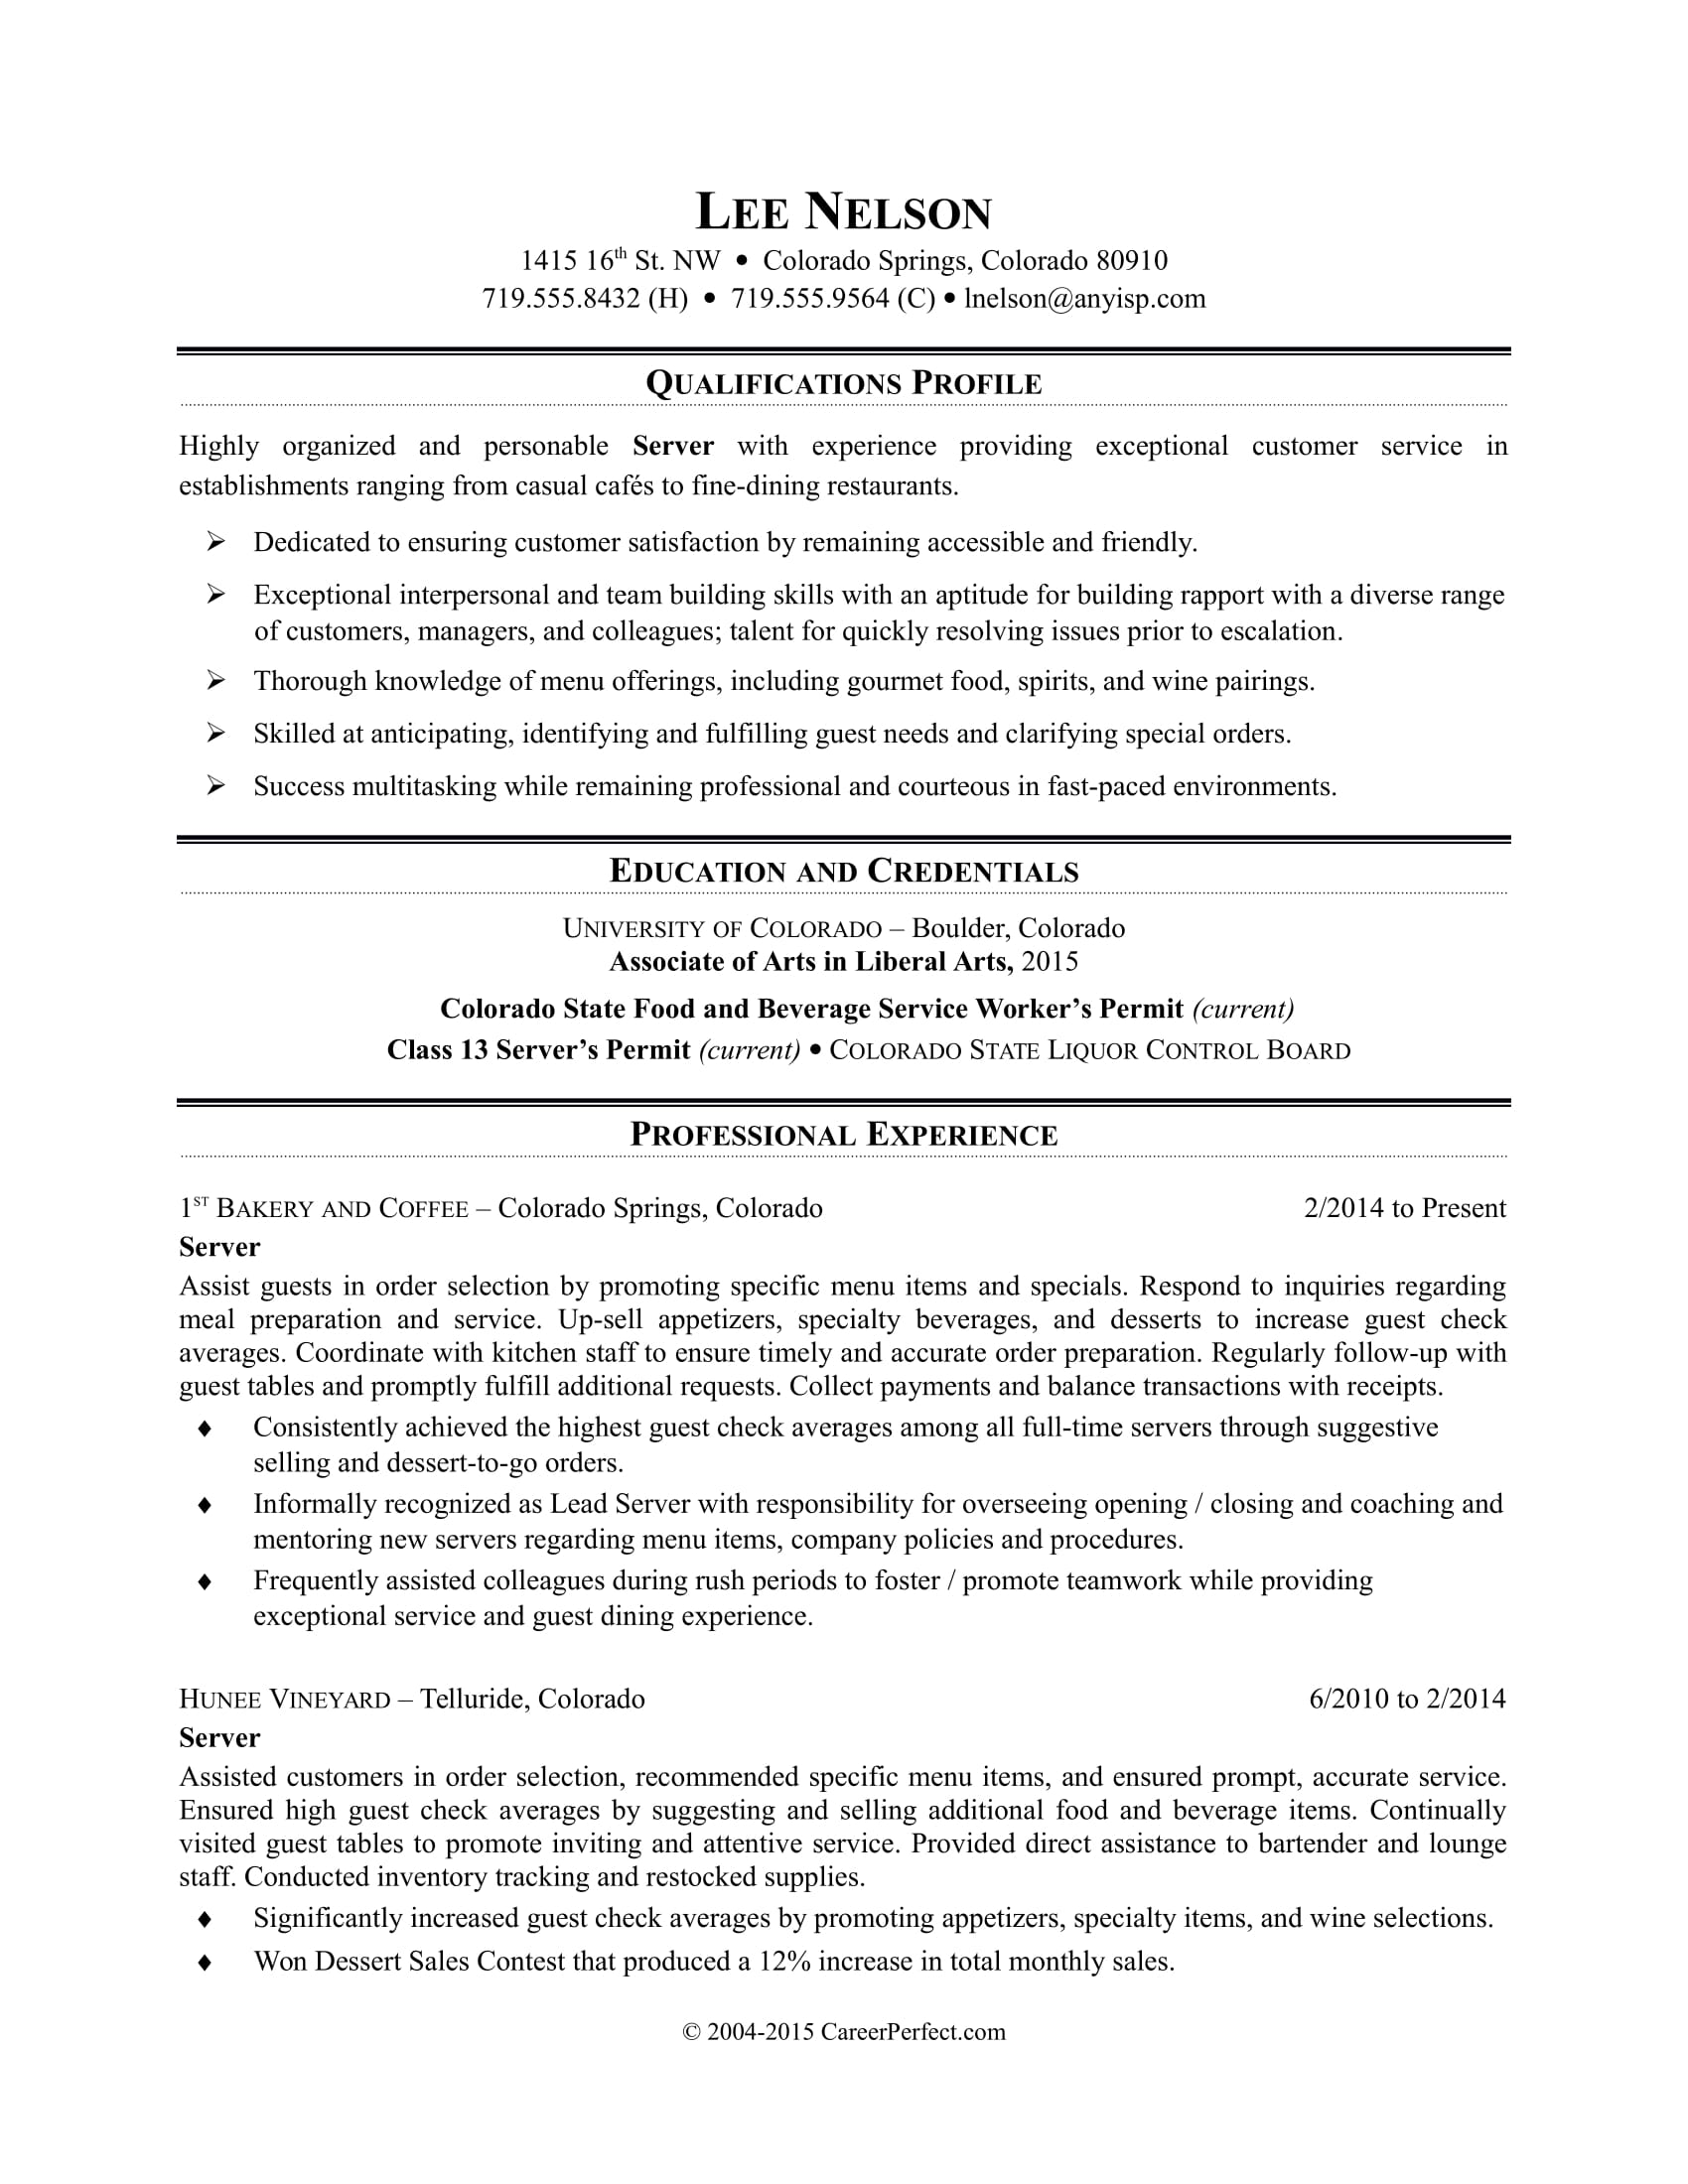 sample resume for a restaurant server - Restaurant Server Resume